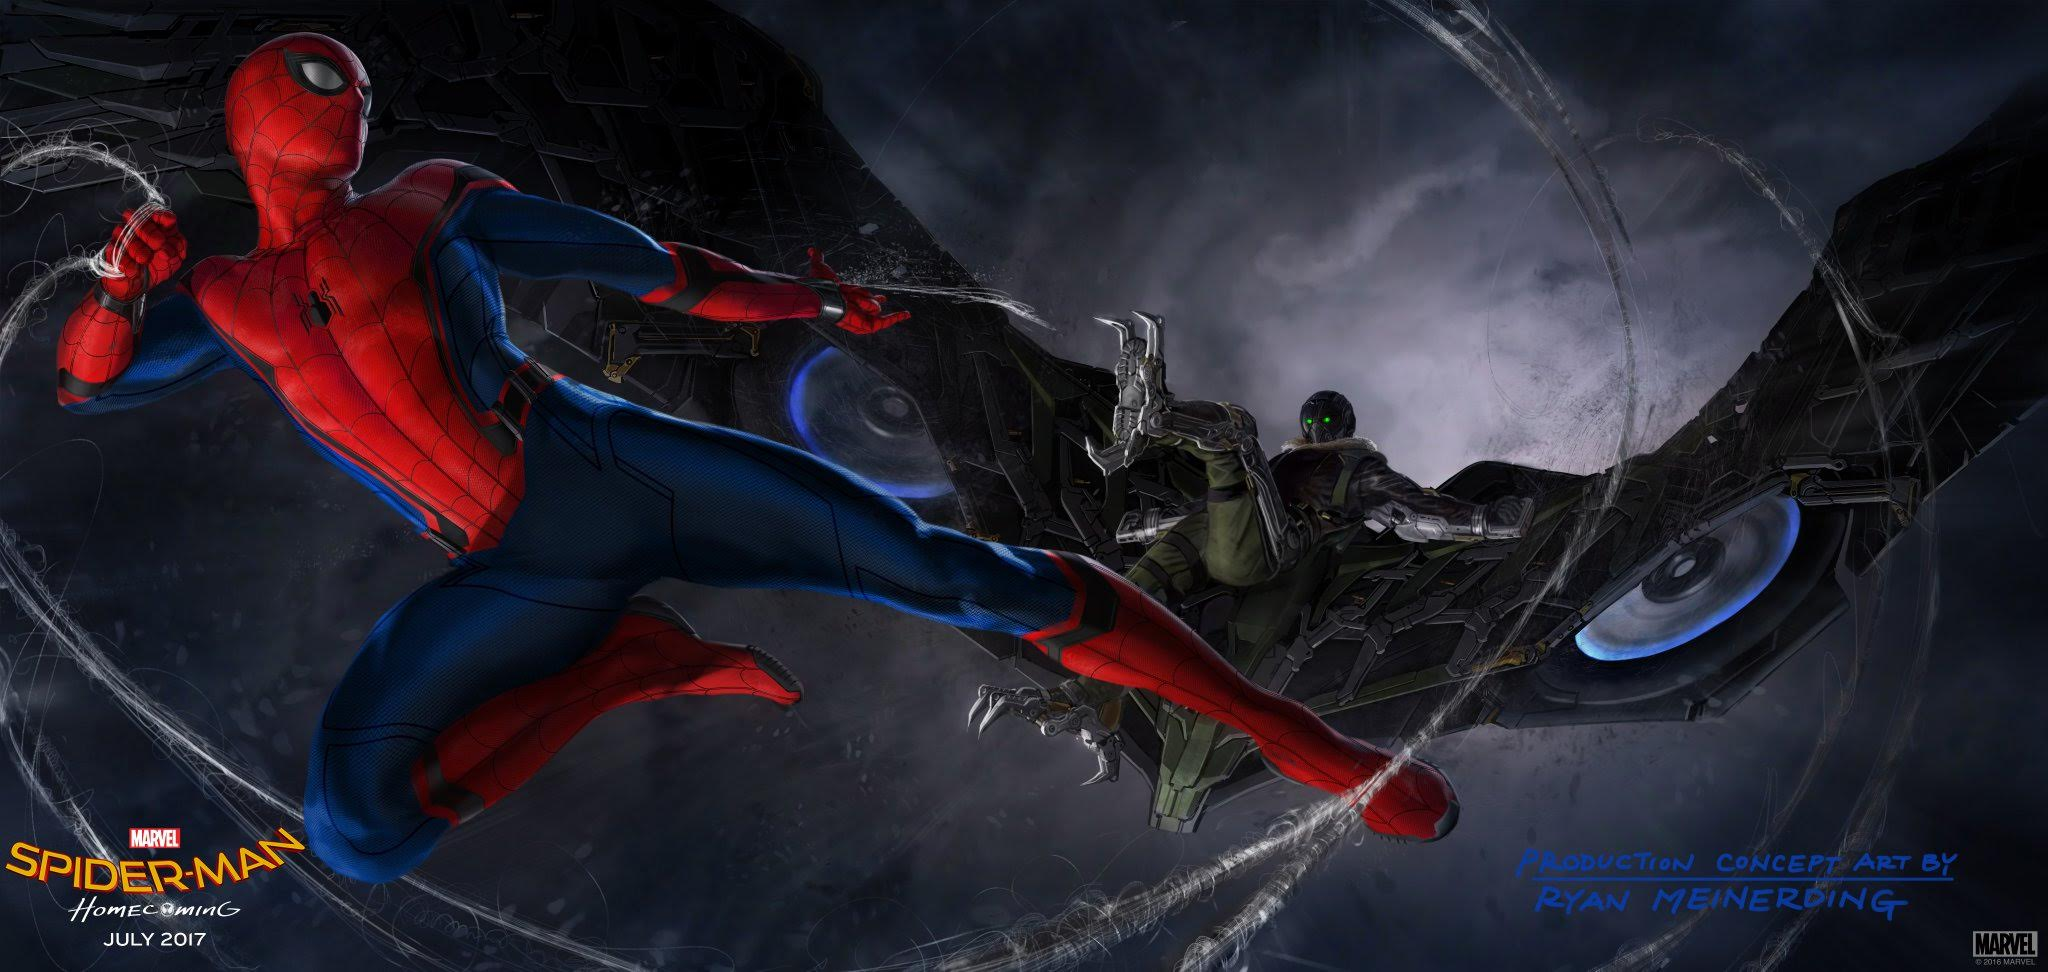 Spider-Man: Homecoming Artwork Confirms The Vulture